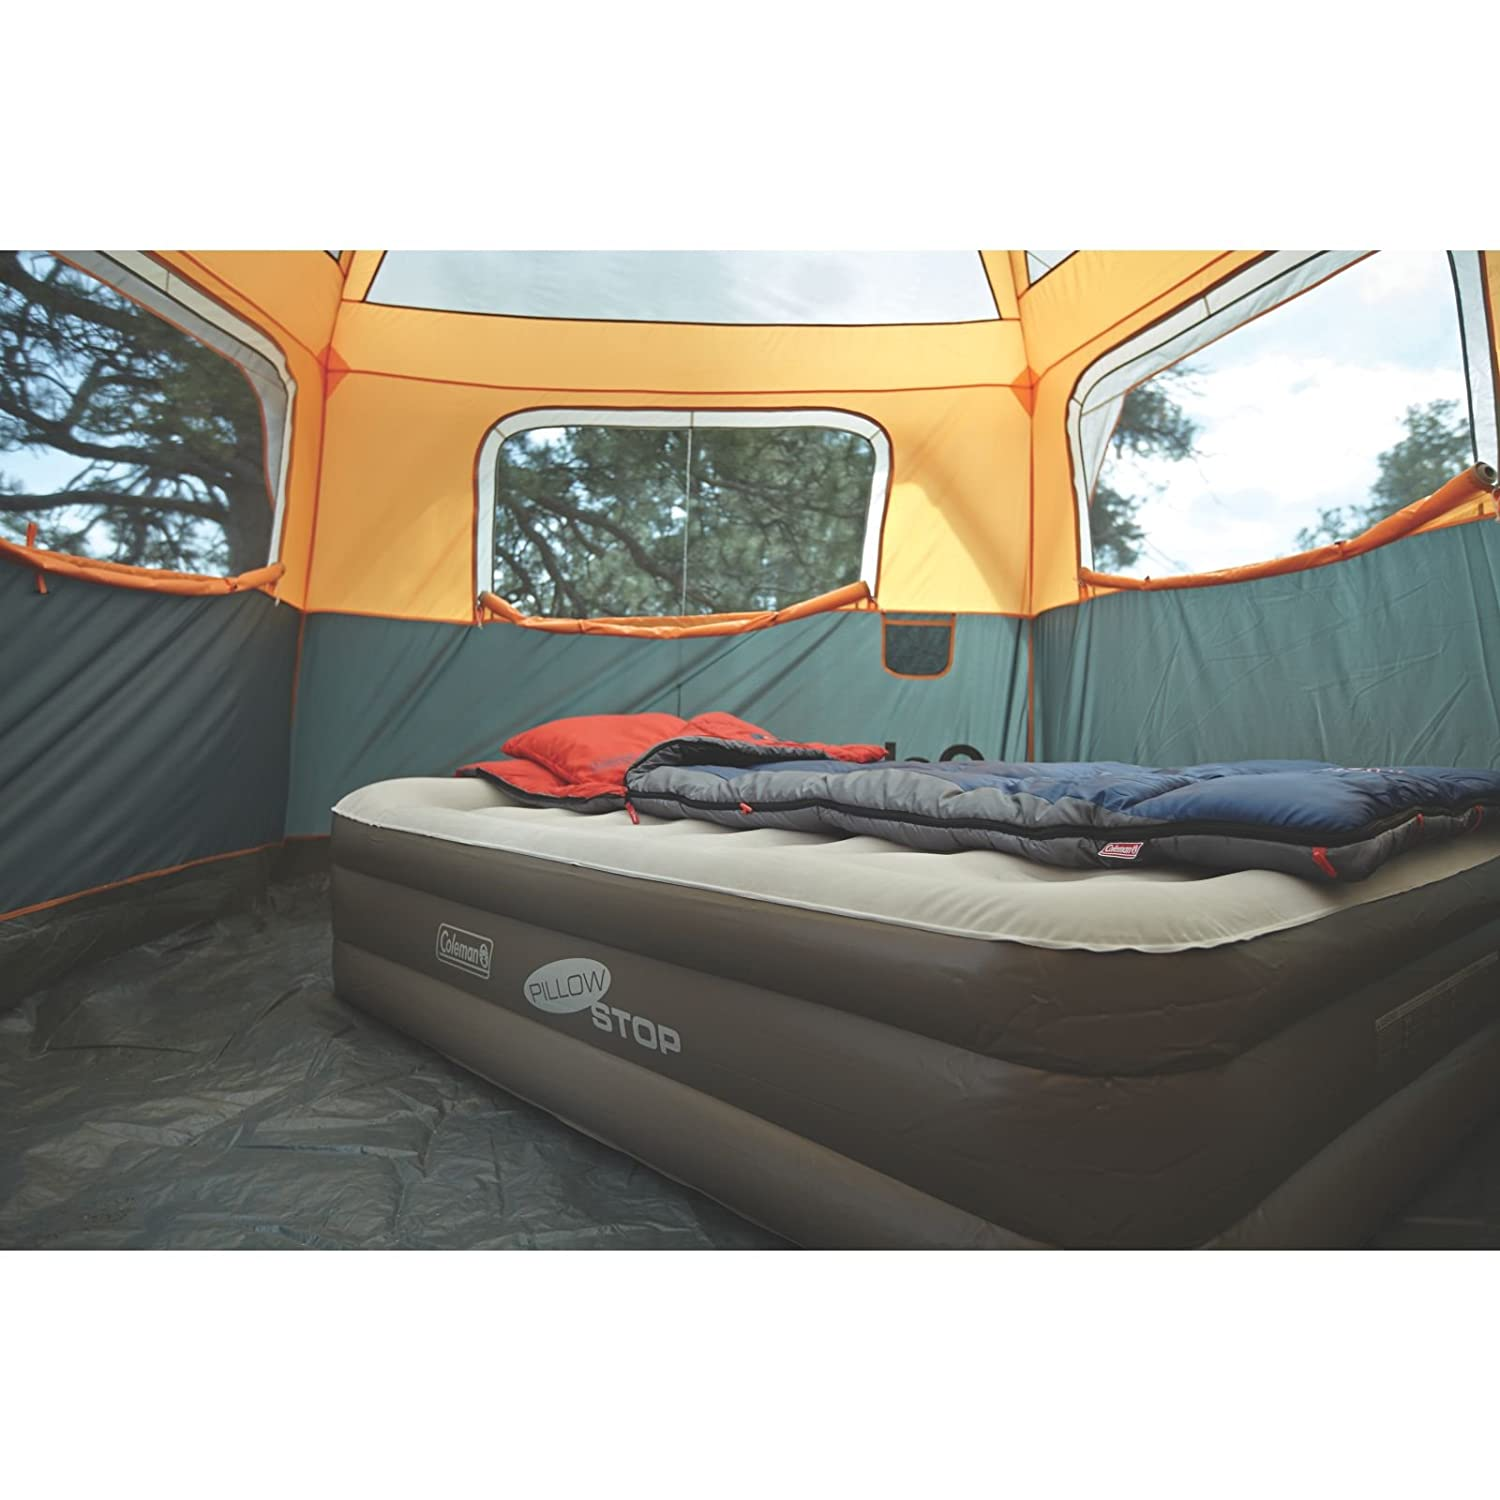 Most Comfortable Camping Mattresses Amp Pads In 2018